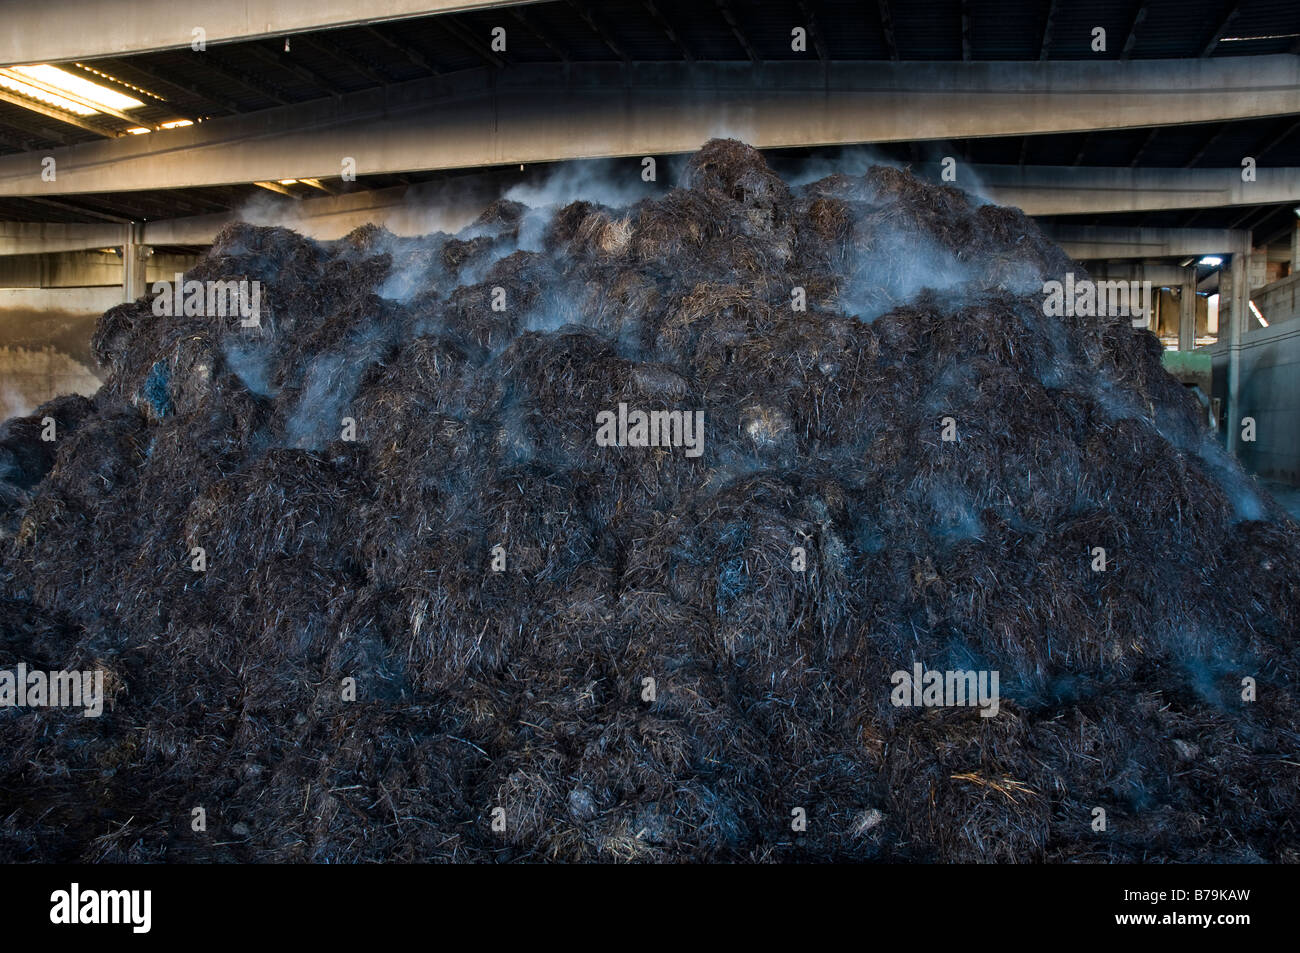 Pile of hot compost for commercial mushroom farming producing rotting gases - Stock Image